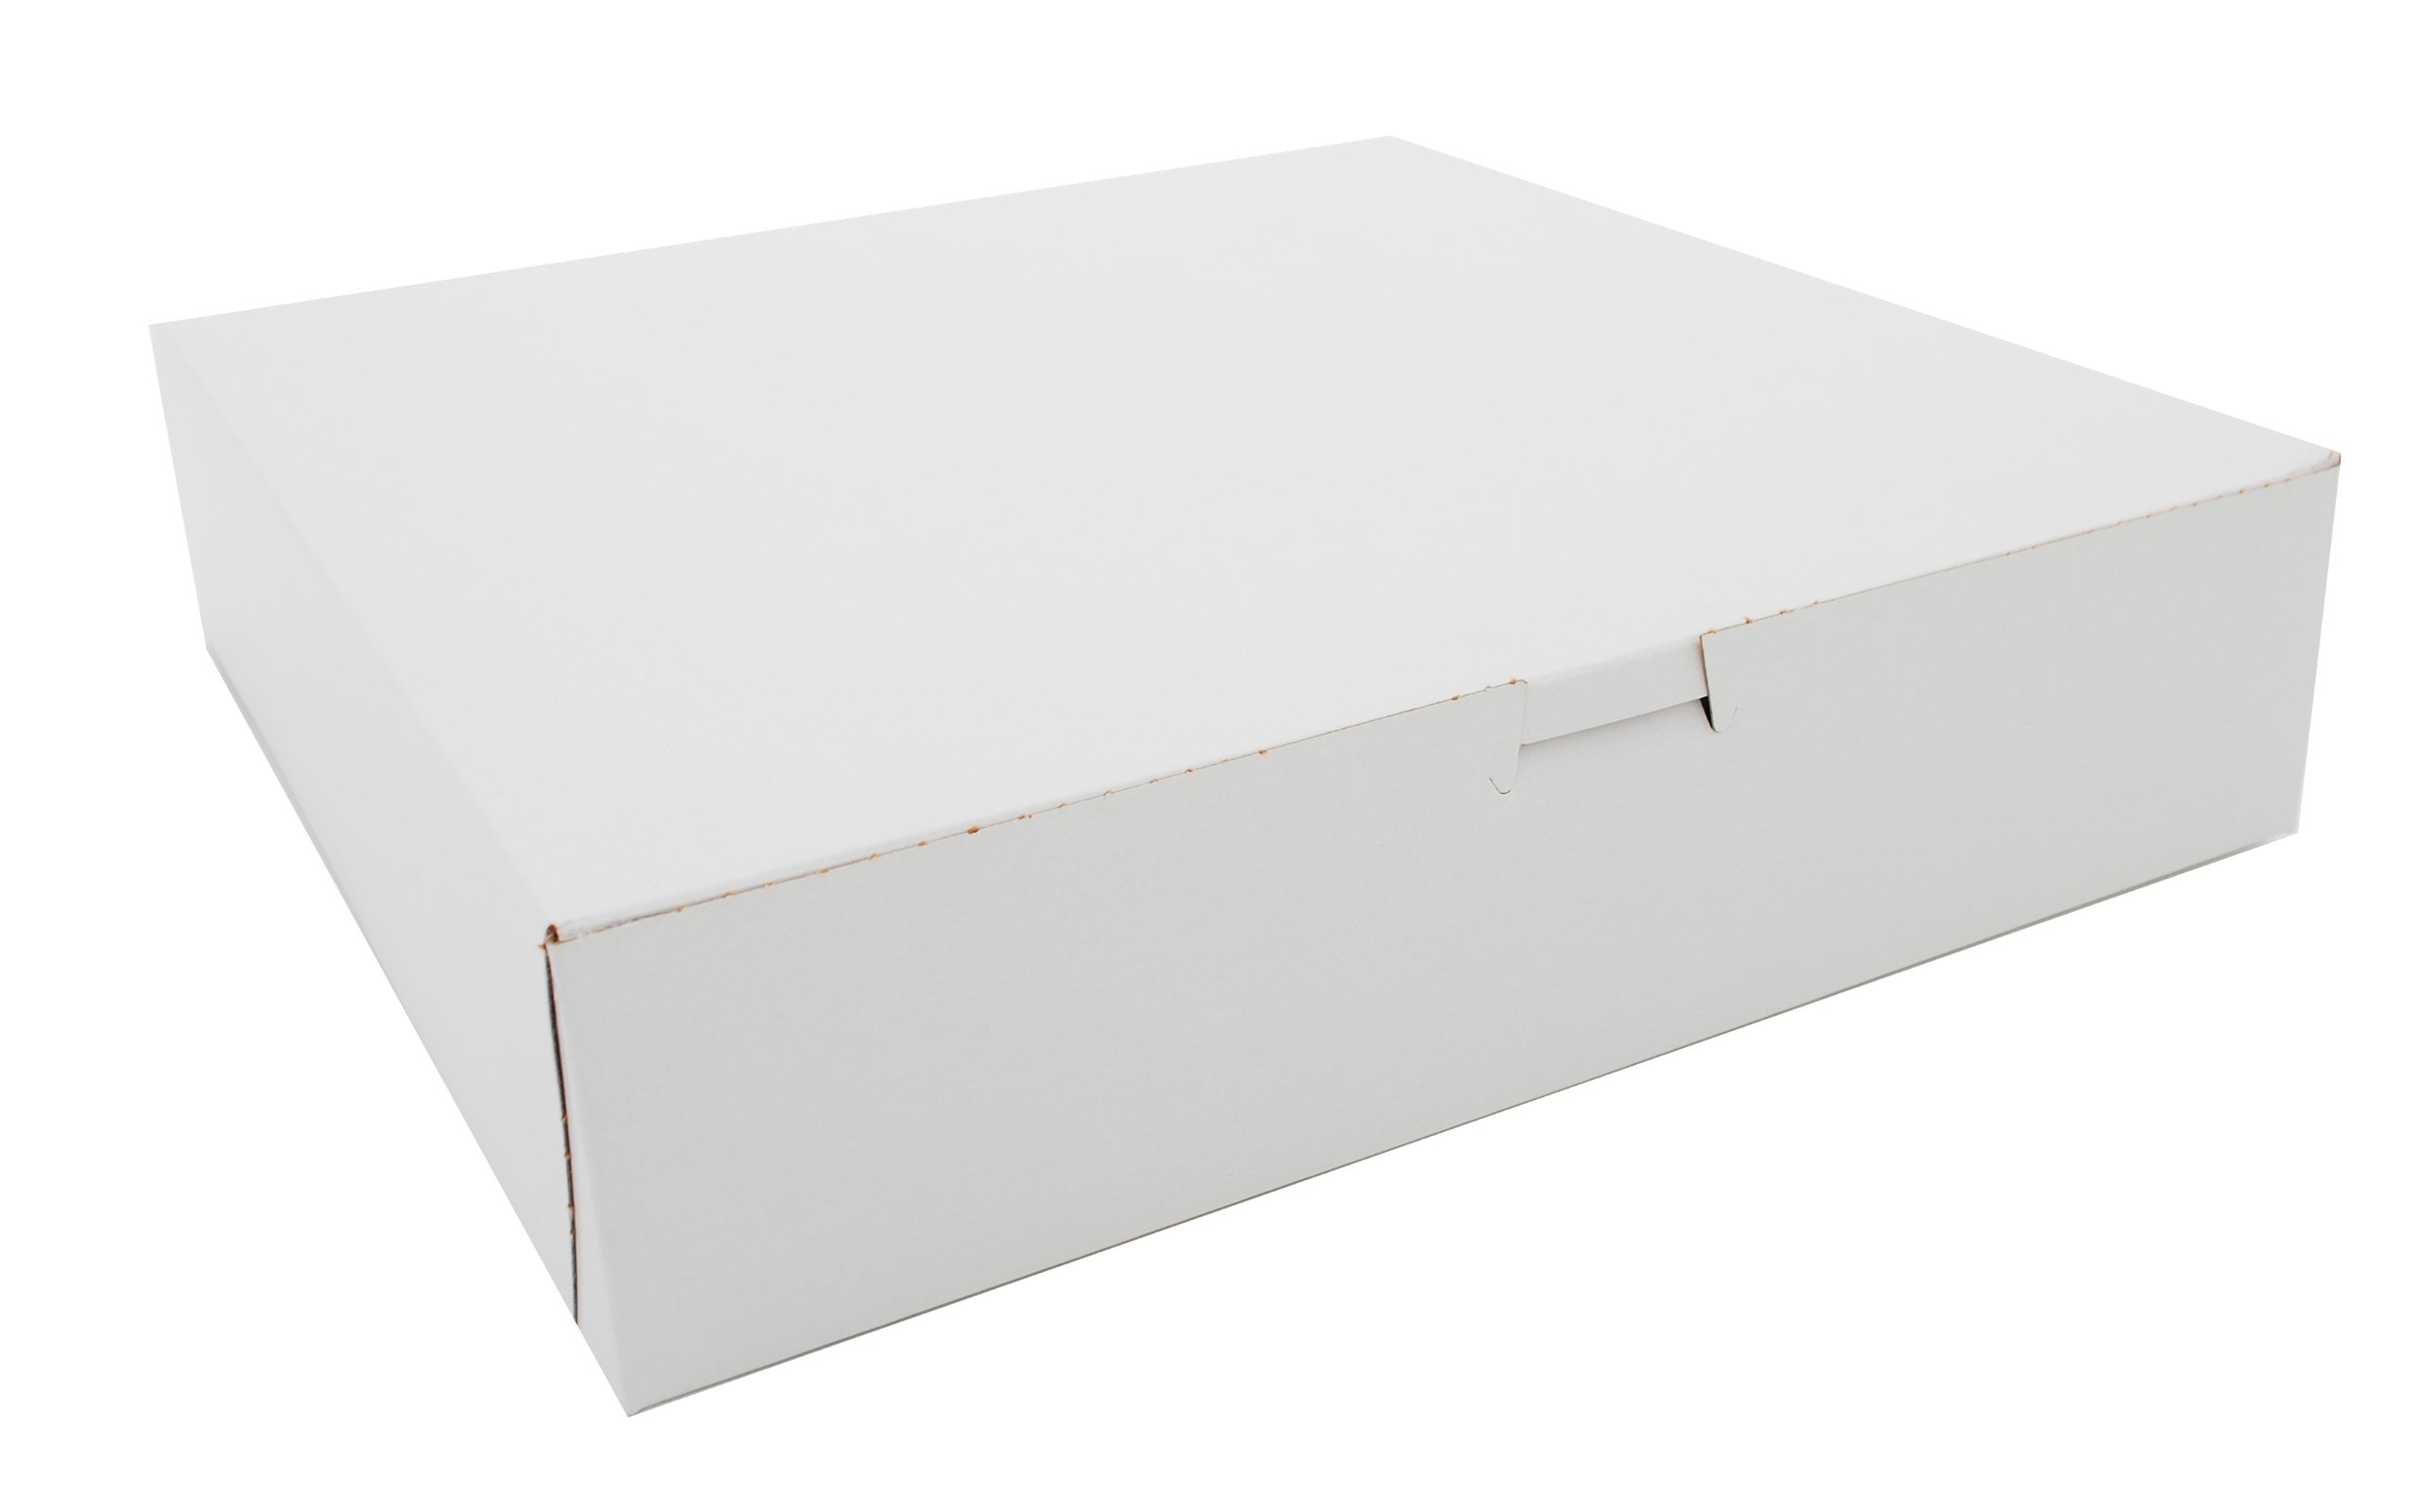 Southern Champion Tray 0984 Premium Clay Coated Kraft Paperboard White Non-Window Lock Corner Bakery Box, 12'' Length x 12'' Width x 2-3/4'' Height (Case of 100)